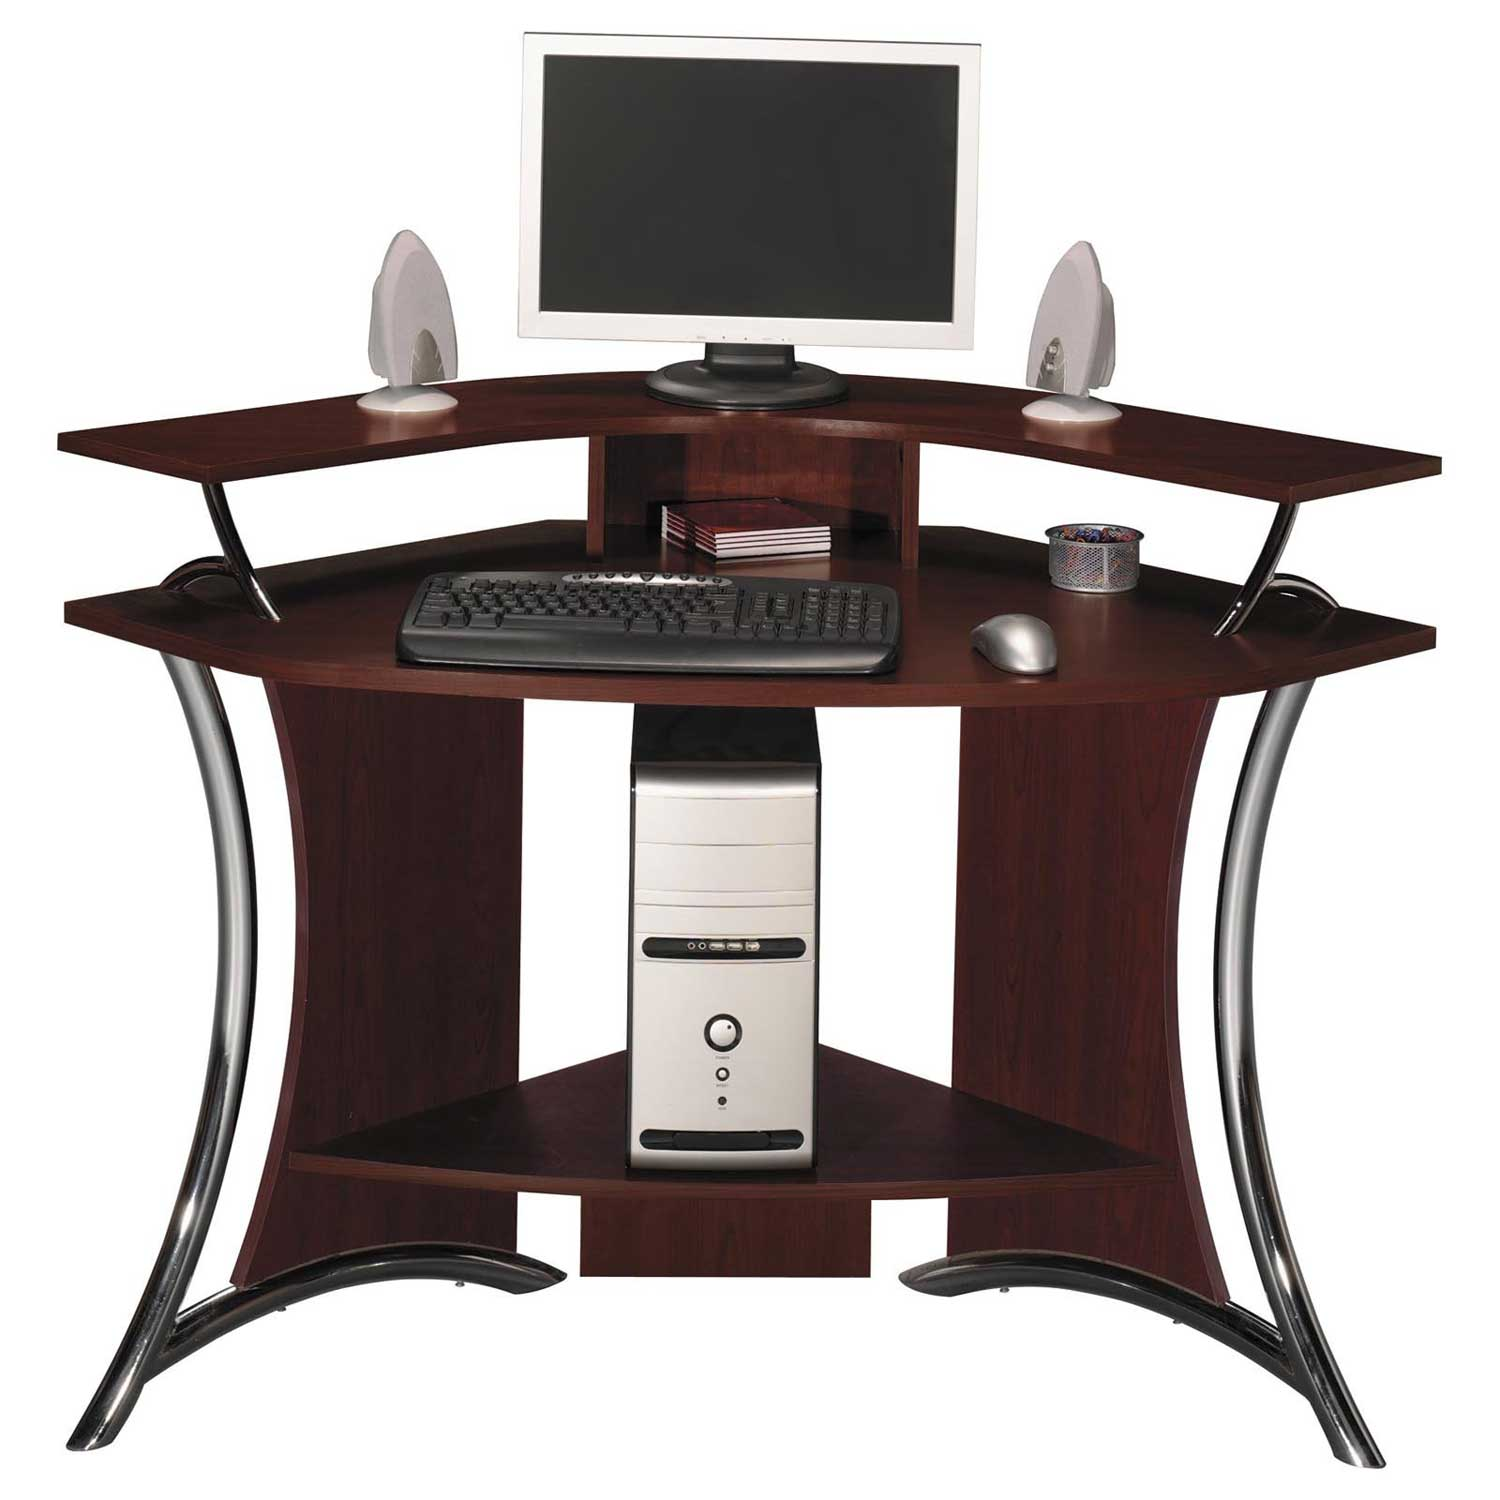 House of Order, House of God: How to choose a good desk